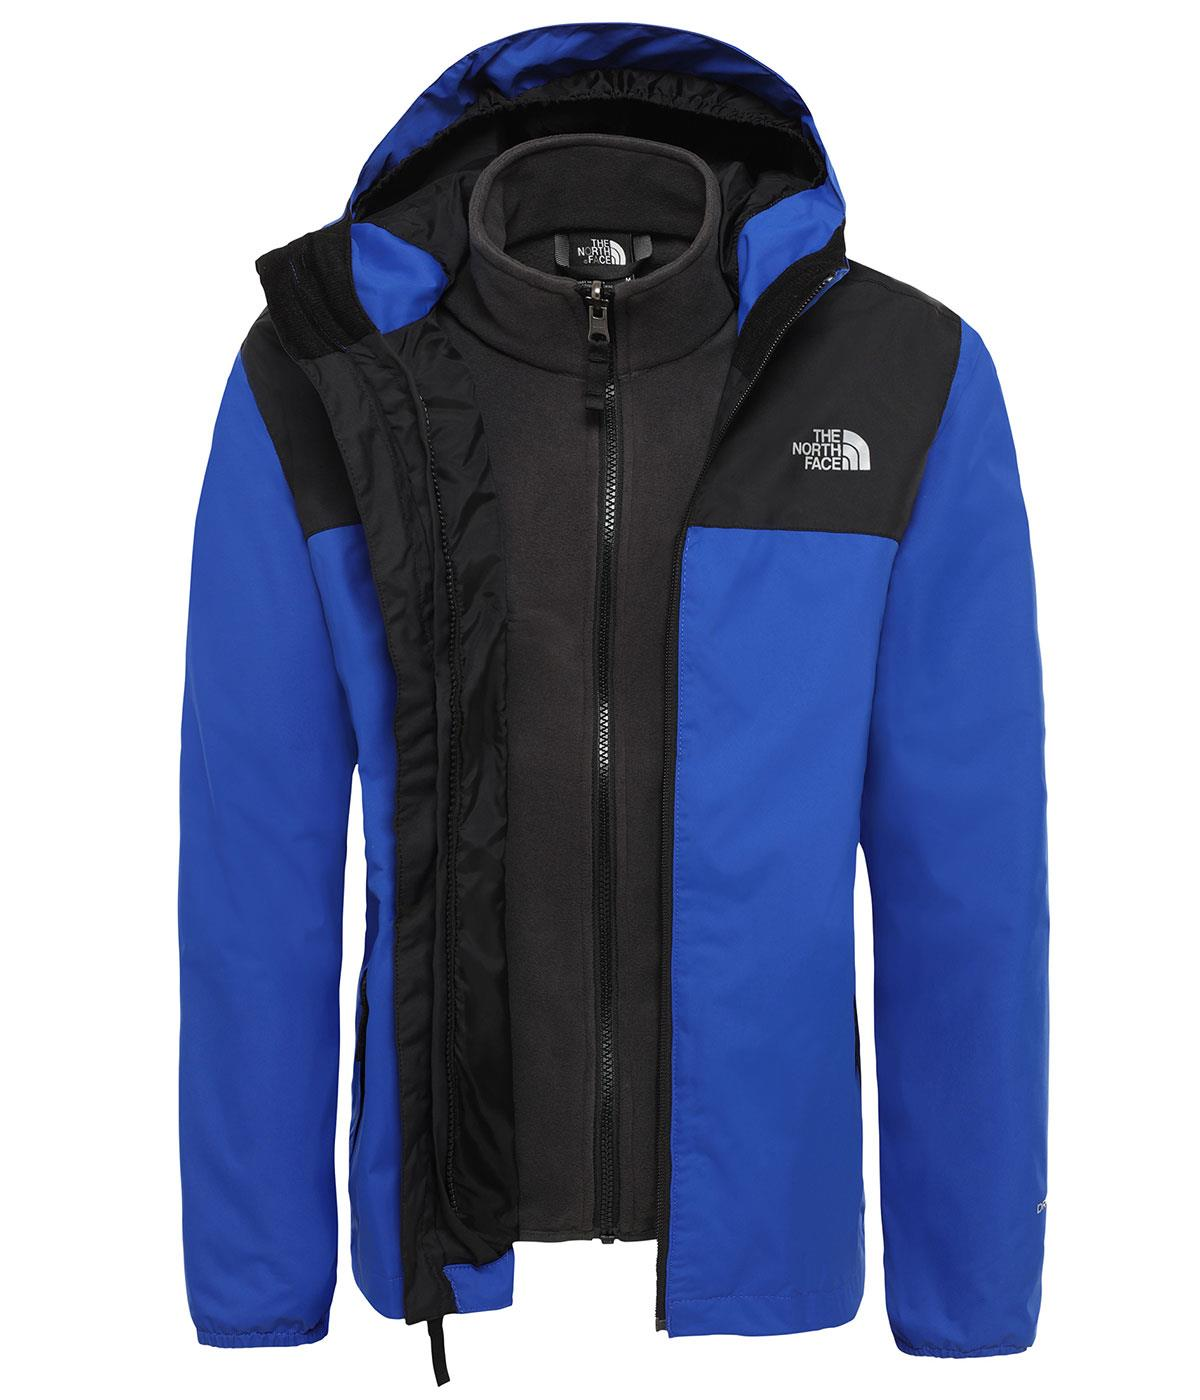 The North Face Elden Rain  Çocuk Tri ceket nf0A3Yf3Cz61